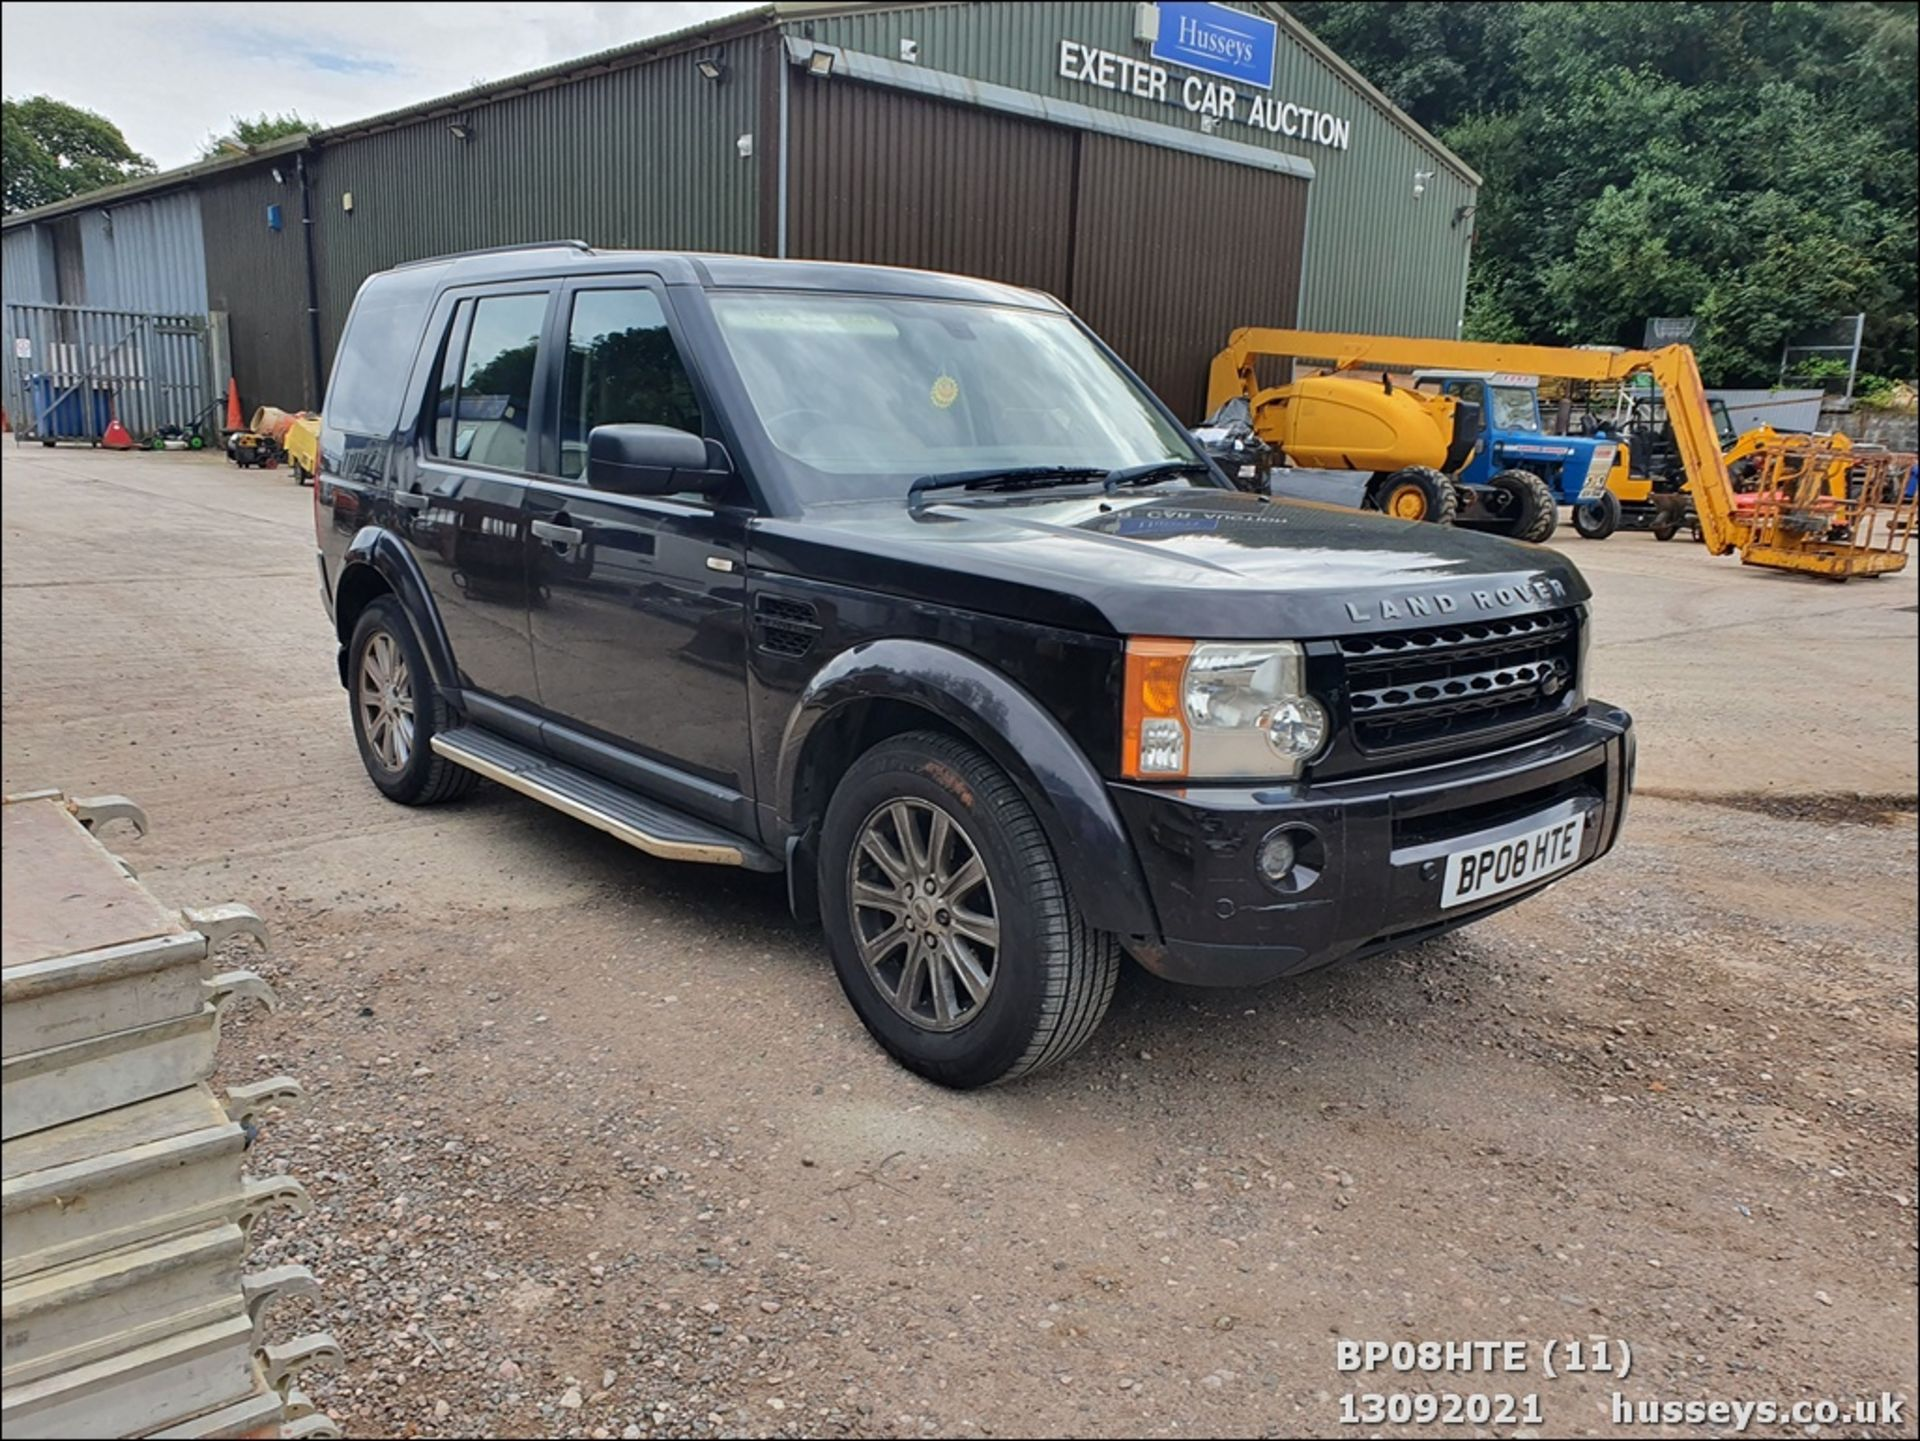 08/08 LAND ROVER DISCOVERY TDV6 SE A - 2720cc 5dr Estate (Brown, 190k) - Image 11 of 18